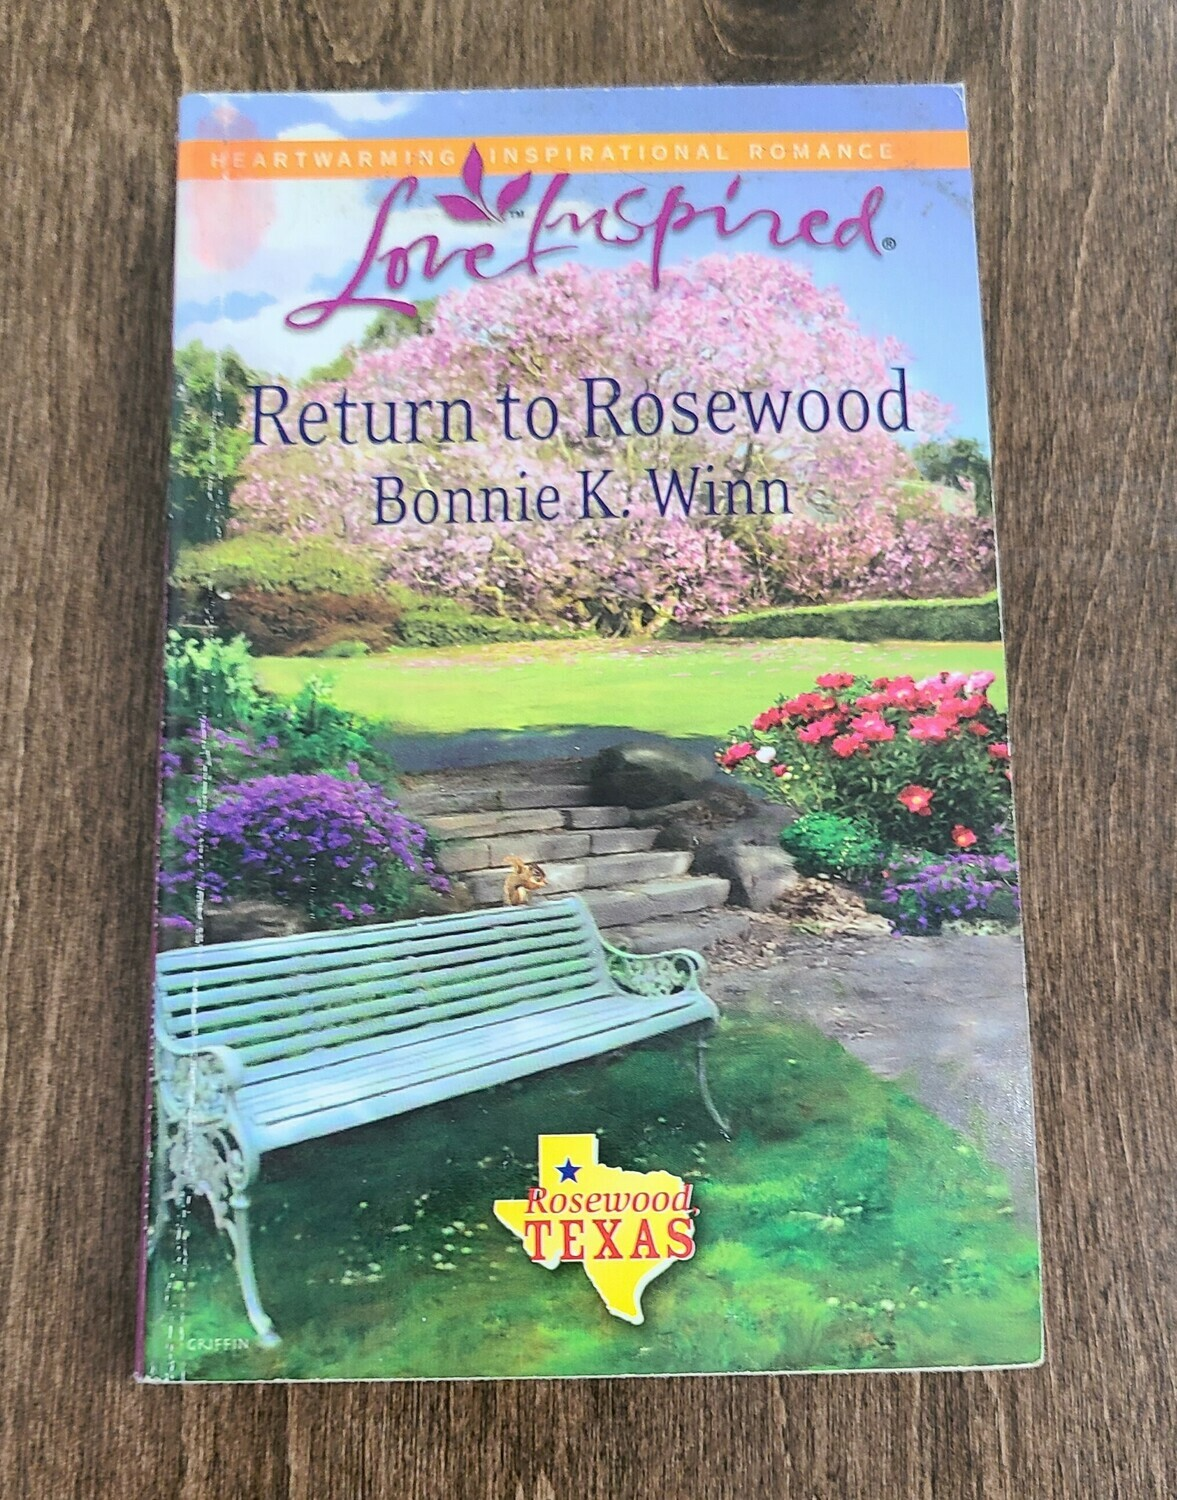 Return to Rosewood by Bonnie K. Winn